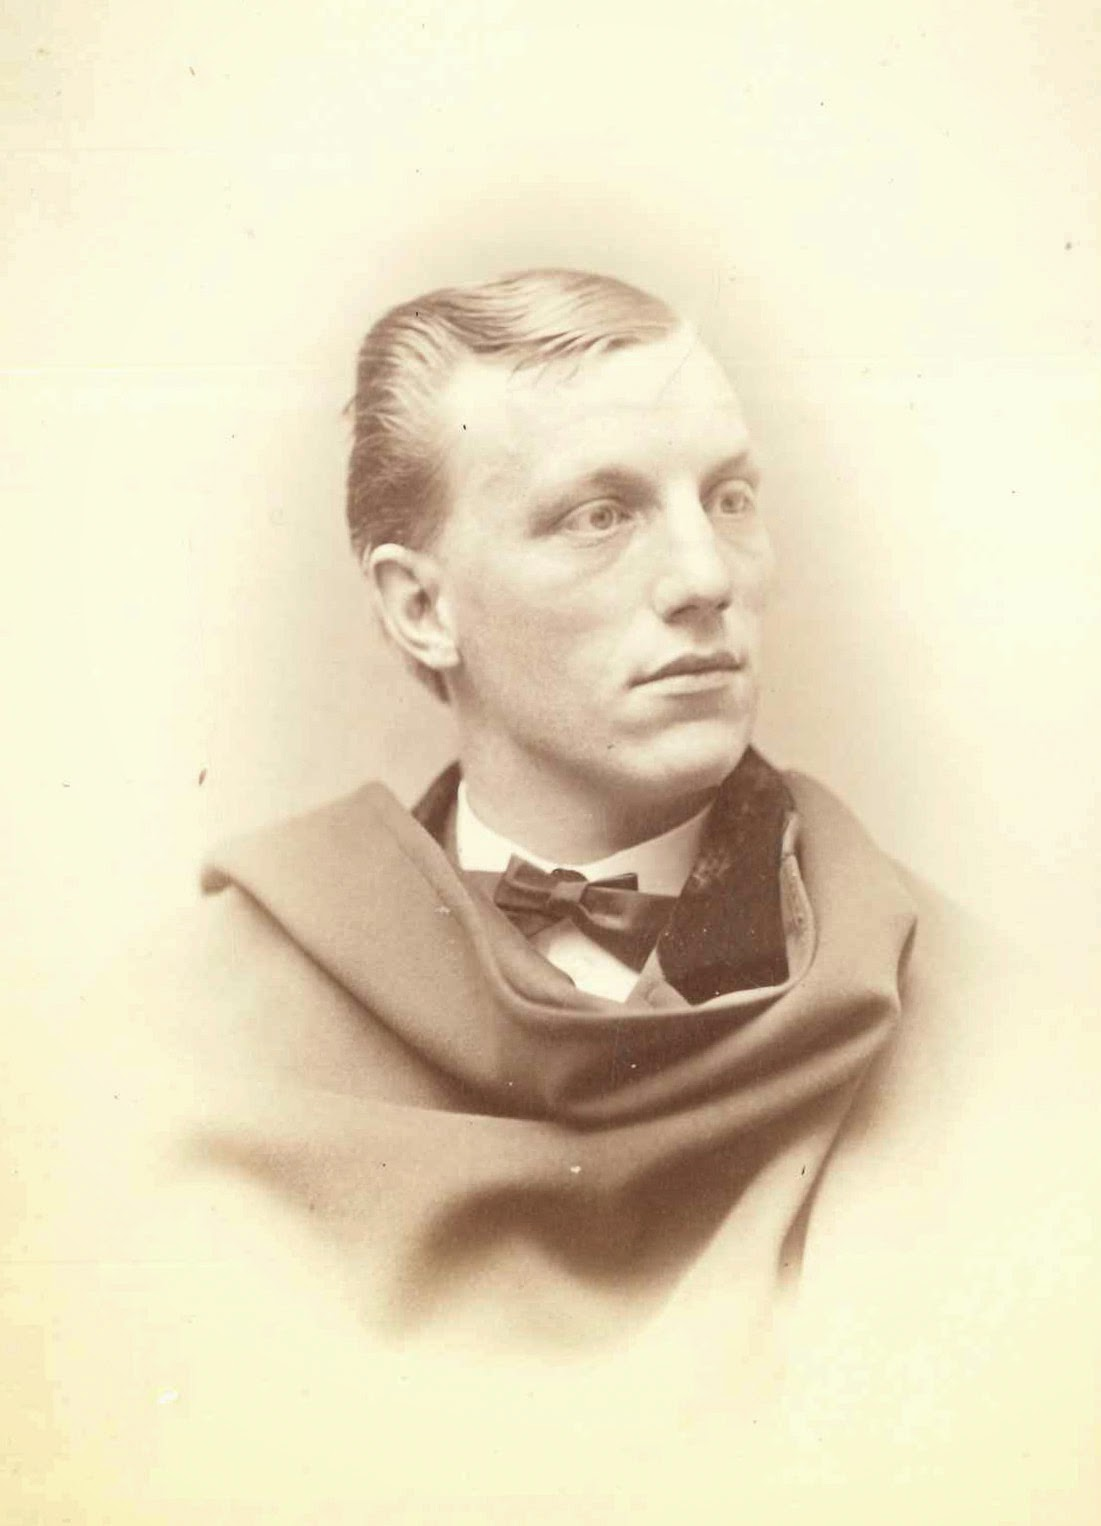 A photograph of a man with cloth draped around his shoulders.